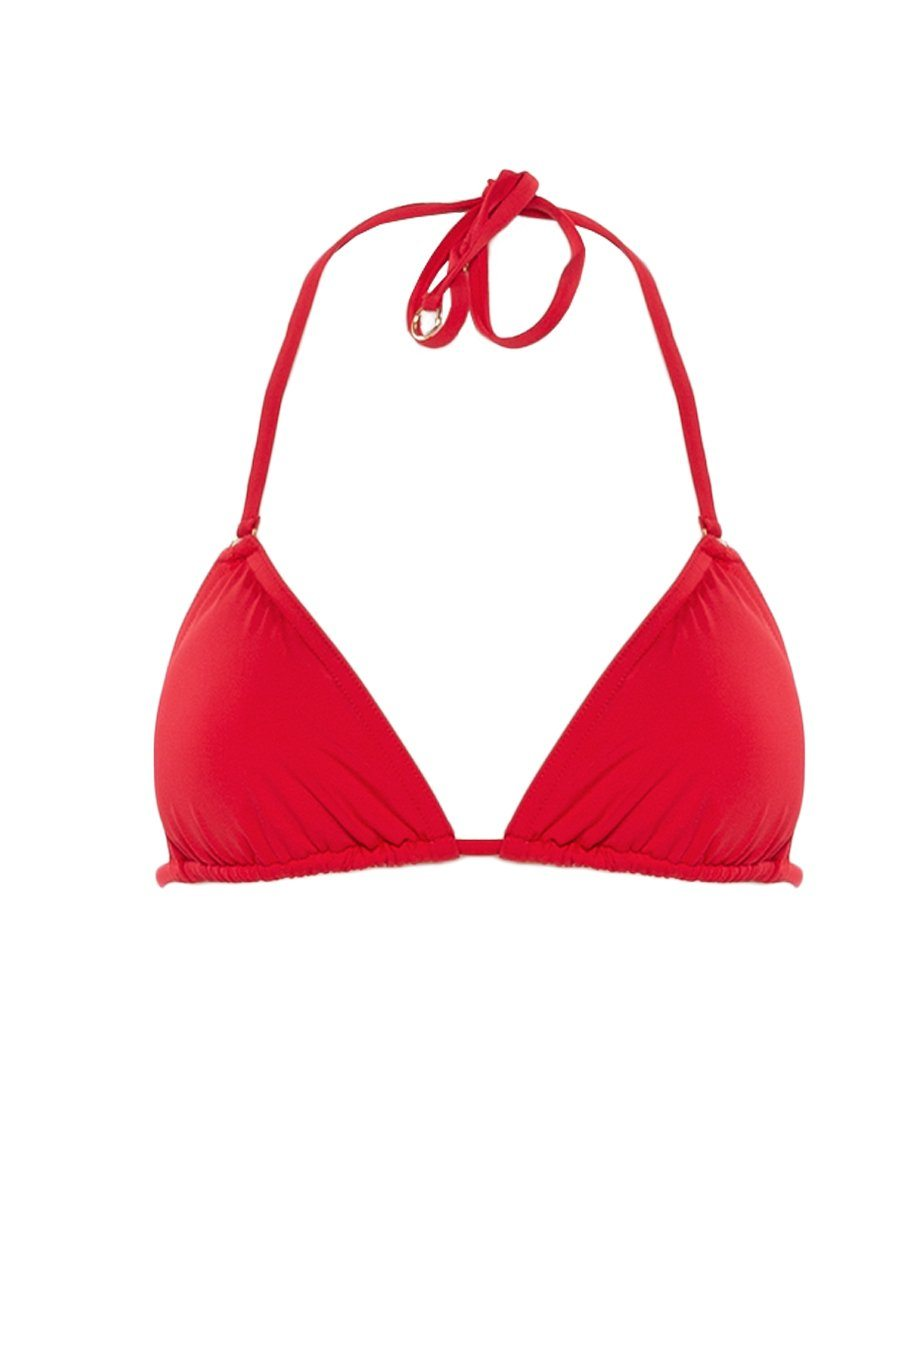 Cuba Triangle Top - Red